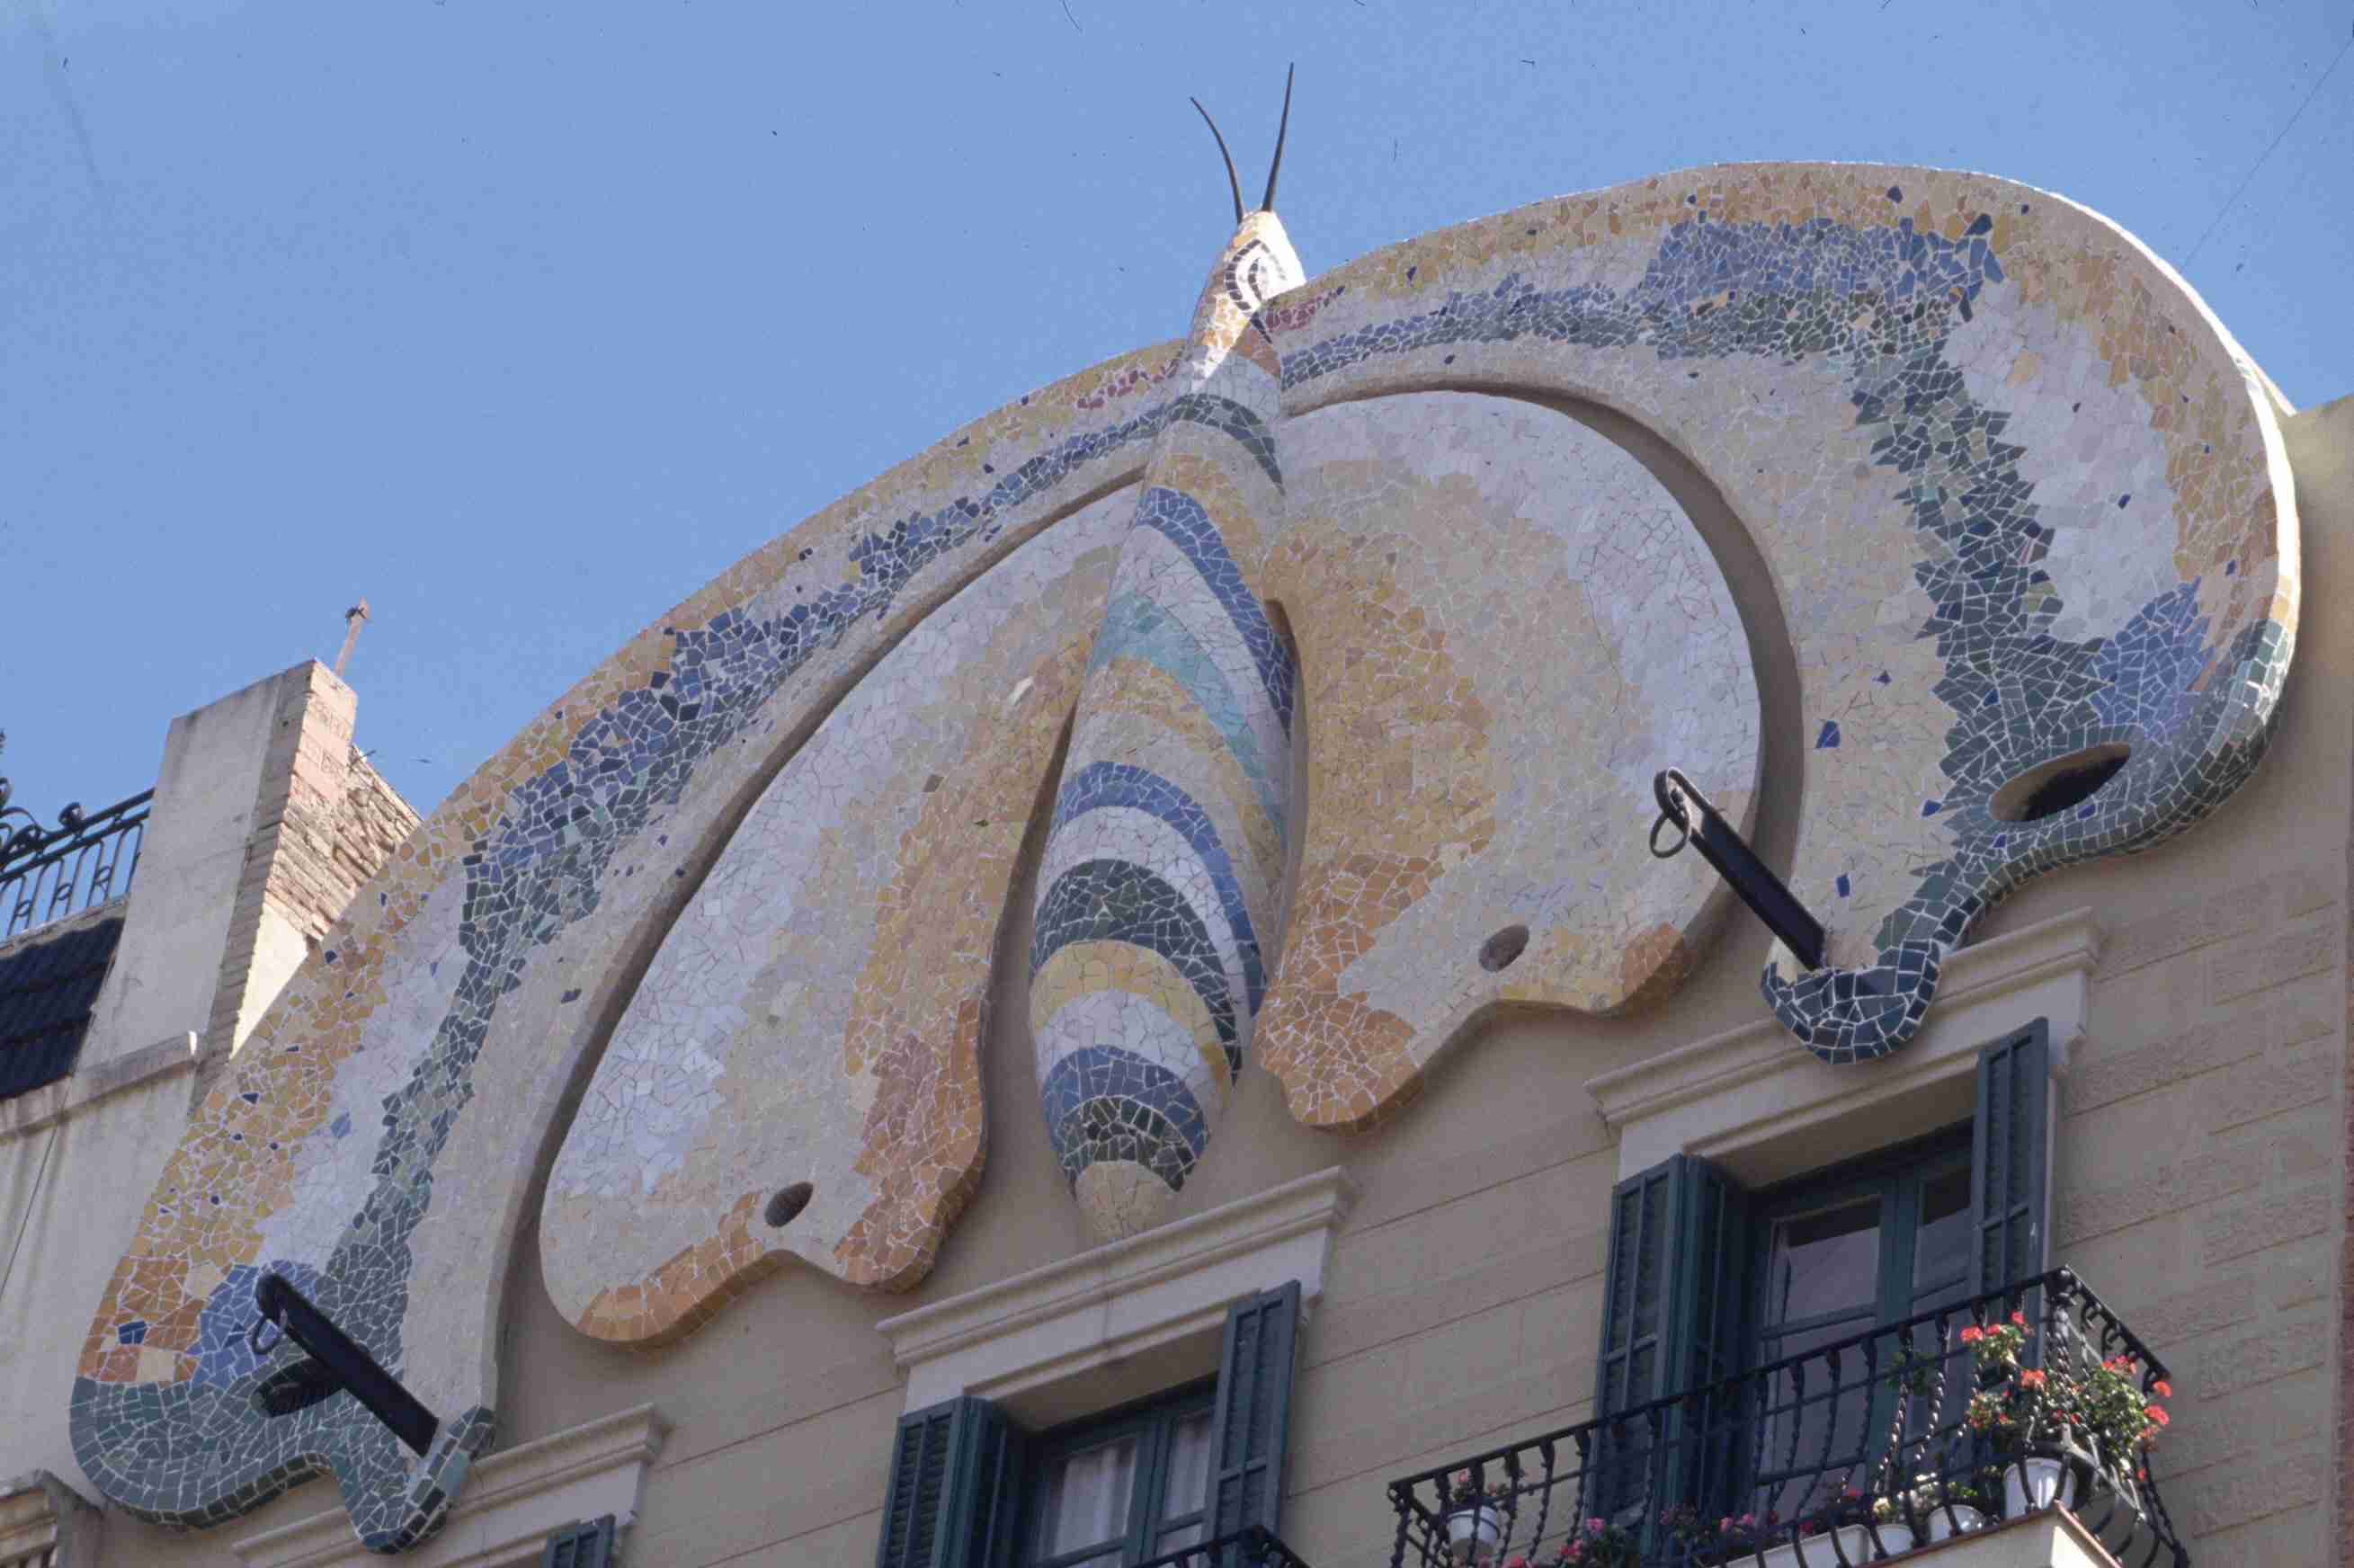 A Gable Formed as a Mosaic Butterfly, Barcelona, Spain